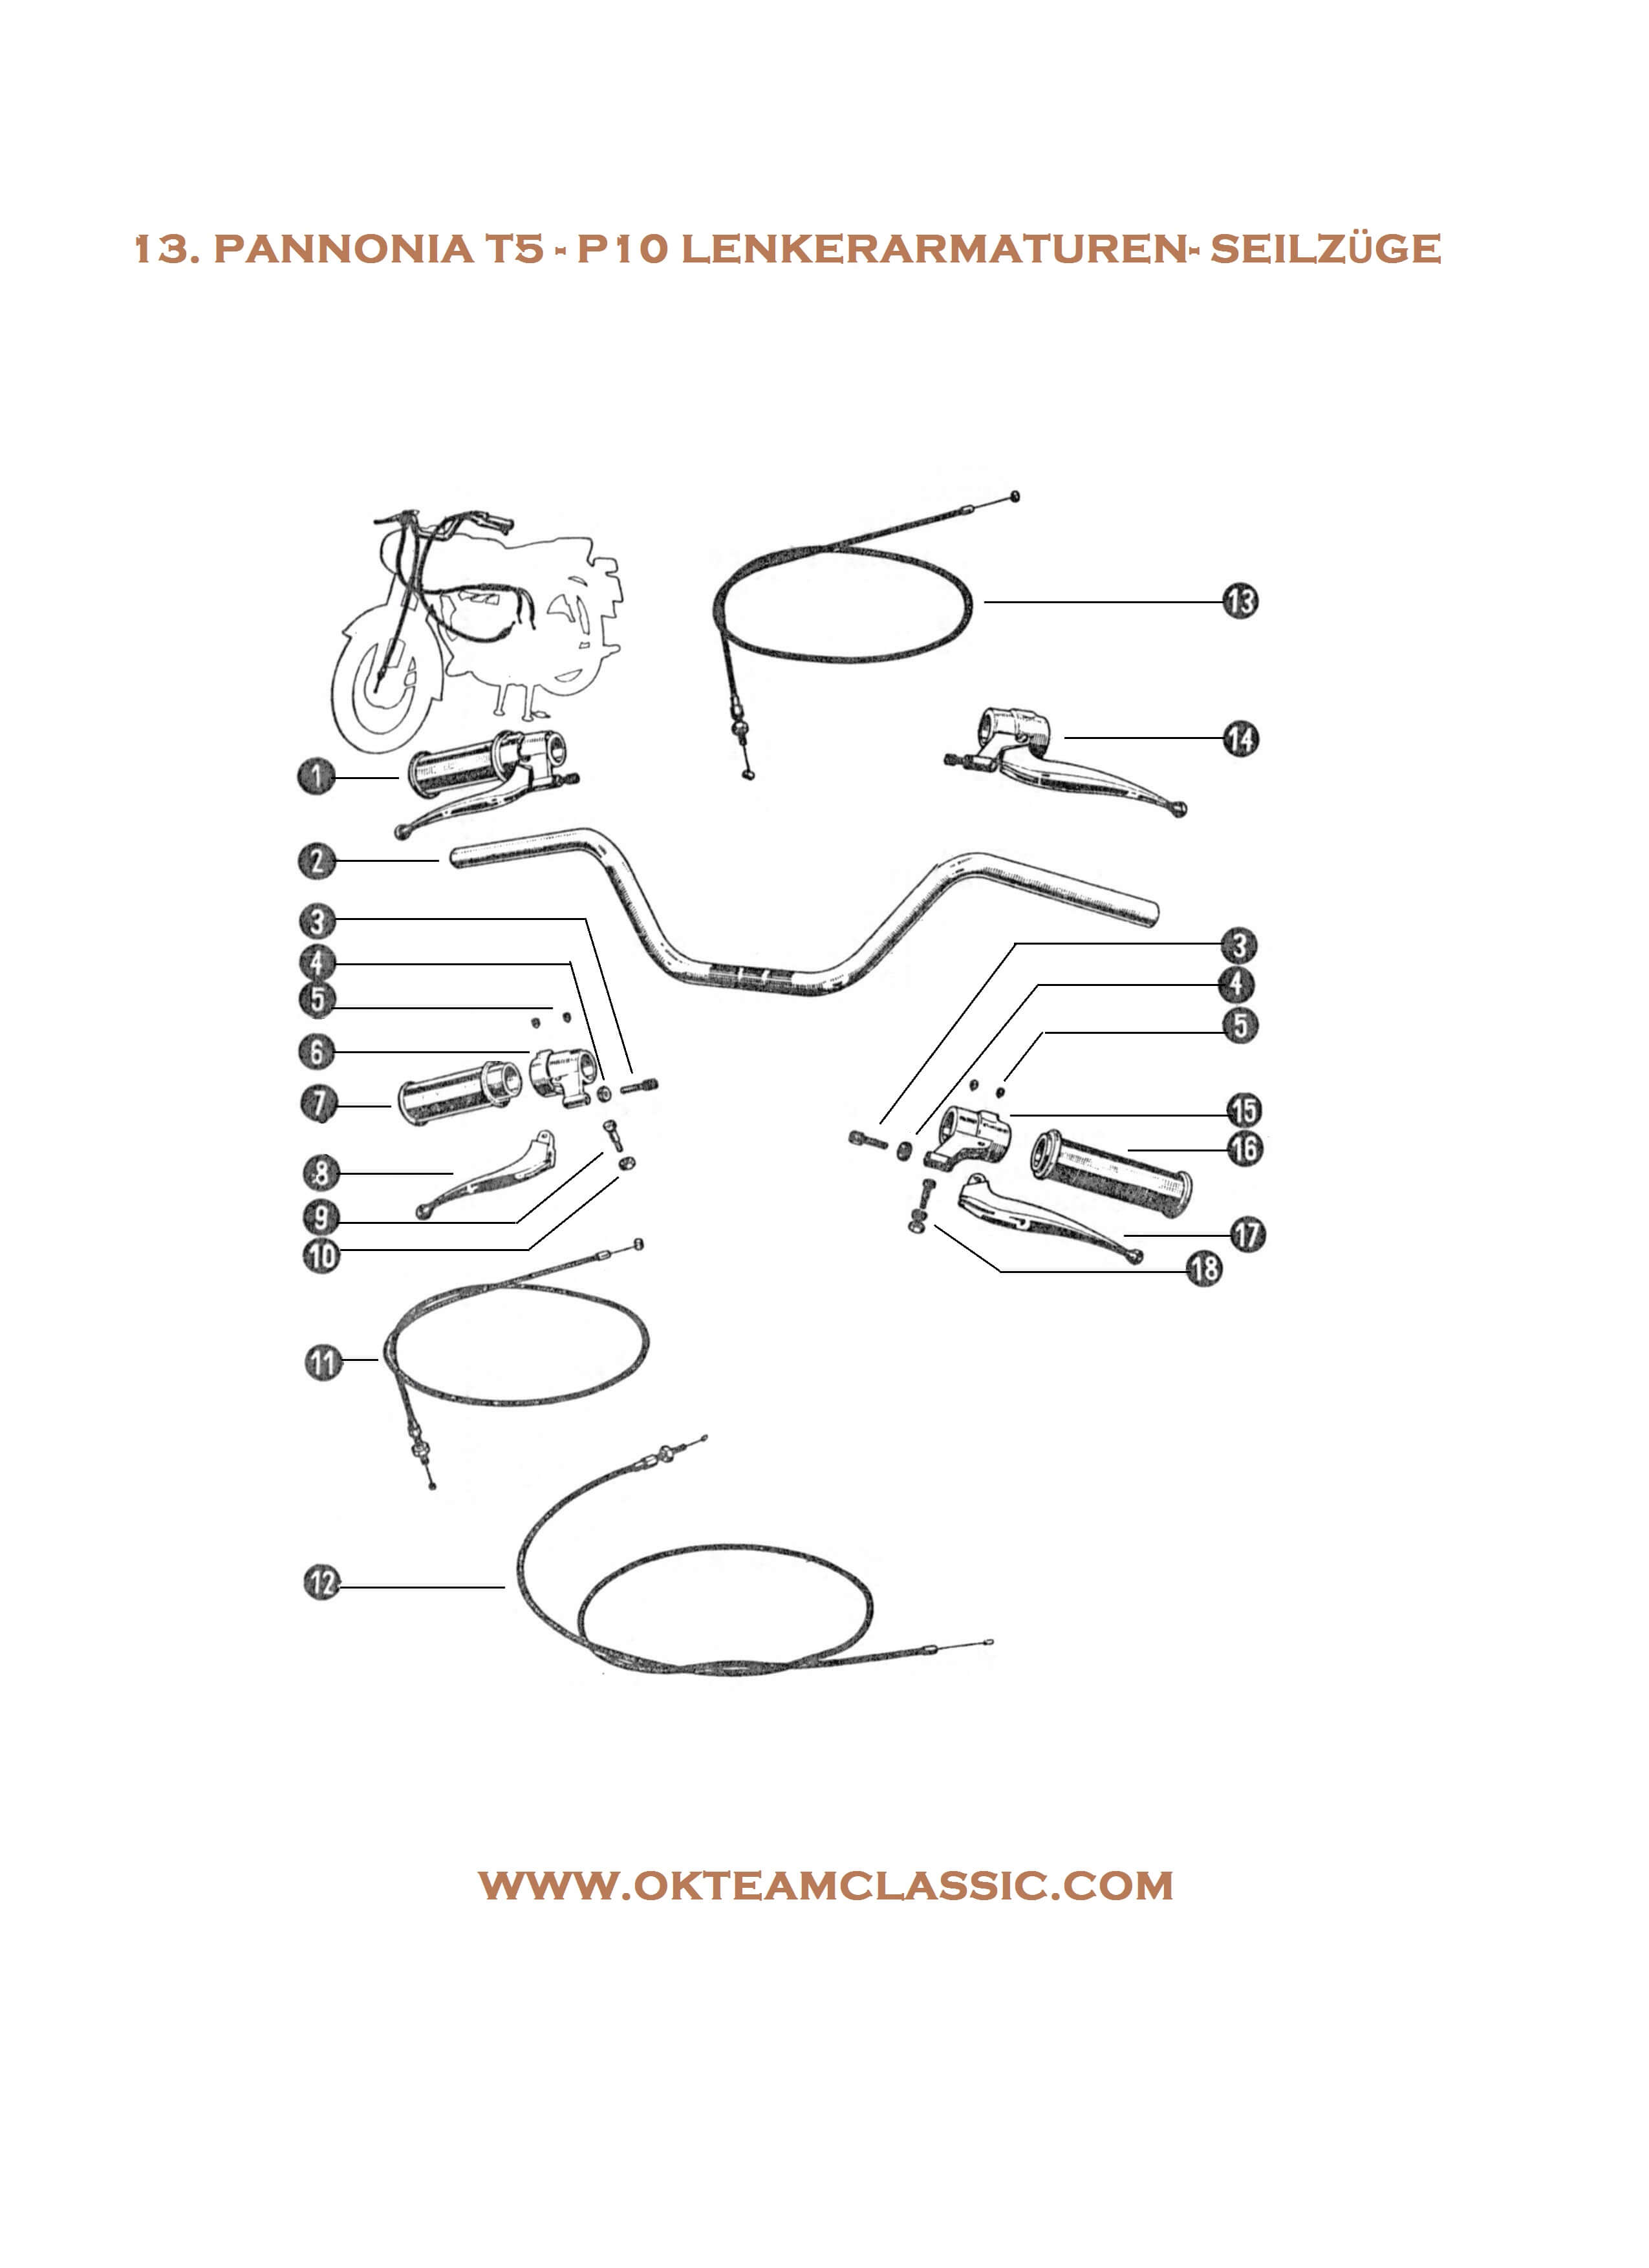 13. Handlebar switches- Cables